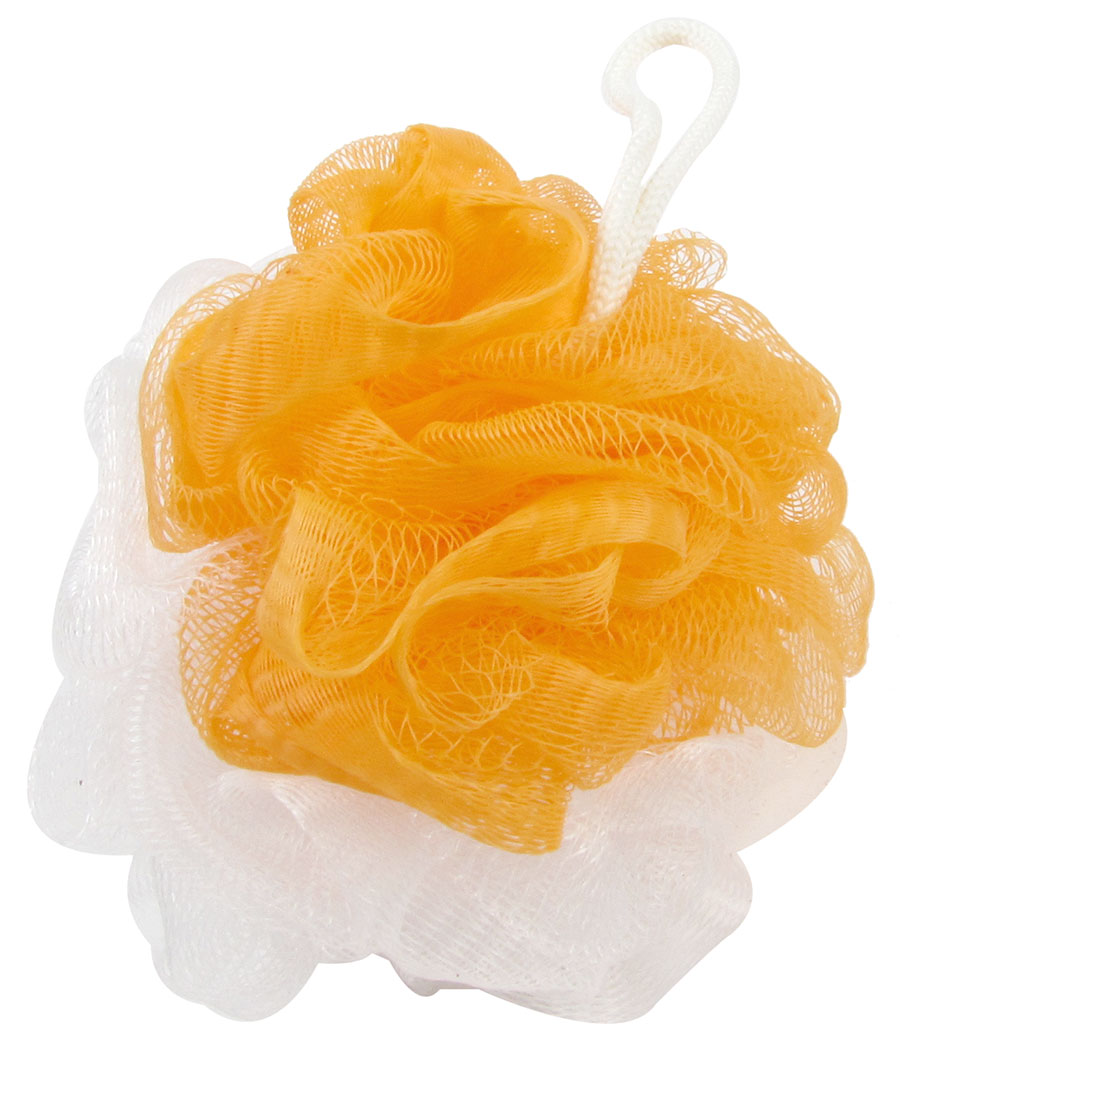 Orange White Nylon Bath Lather Scrubber Shower Pouf Body Cleaner Scrubbing Tool